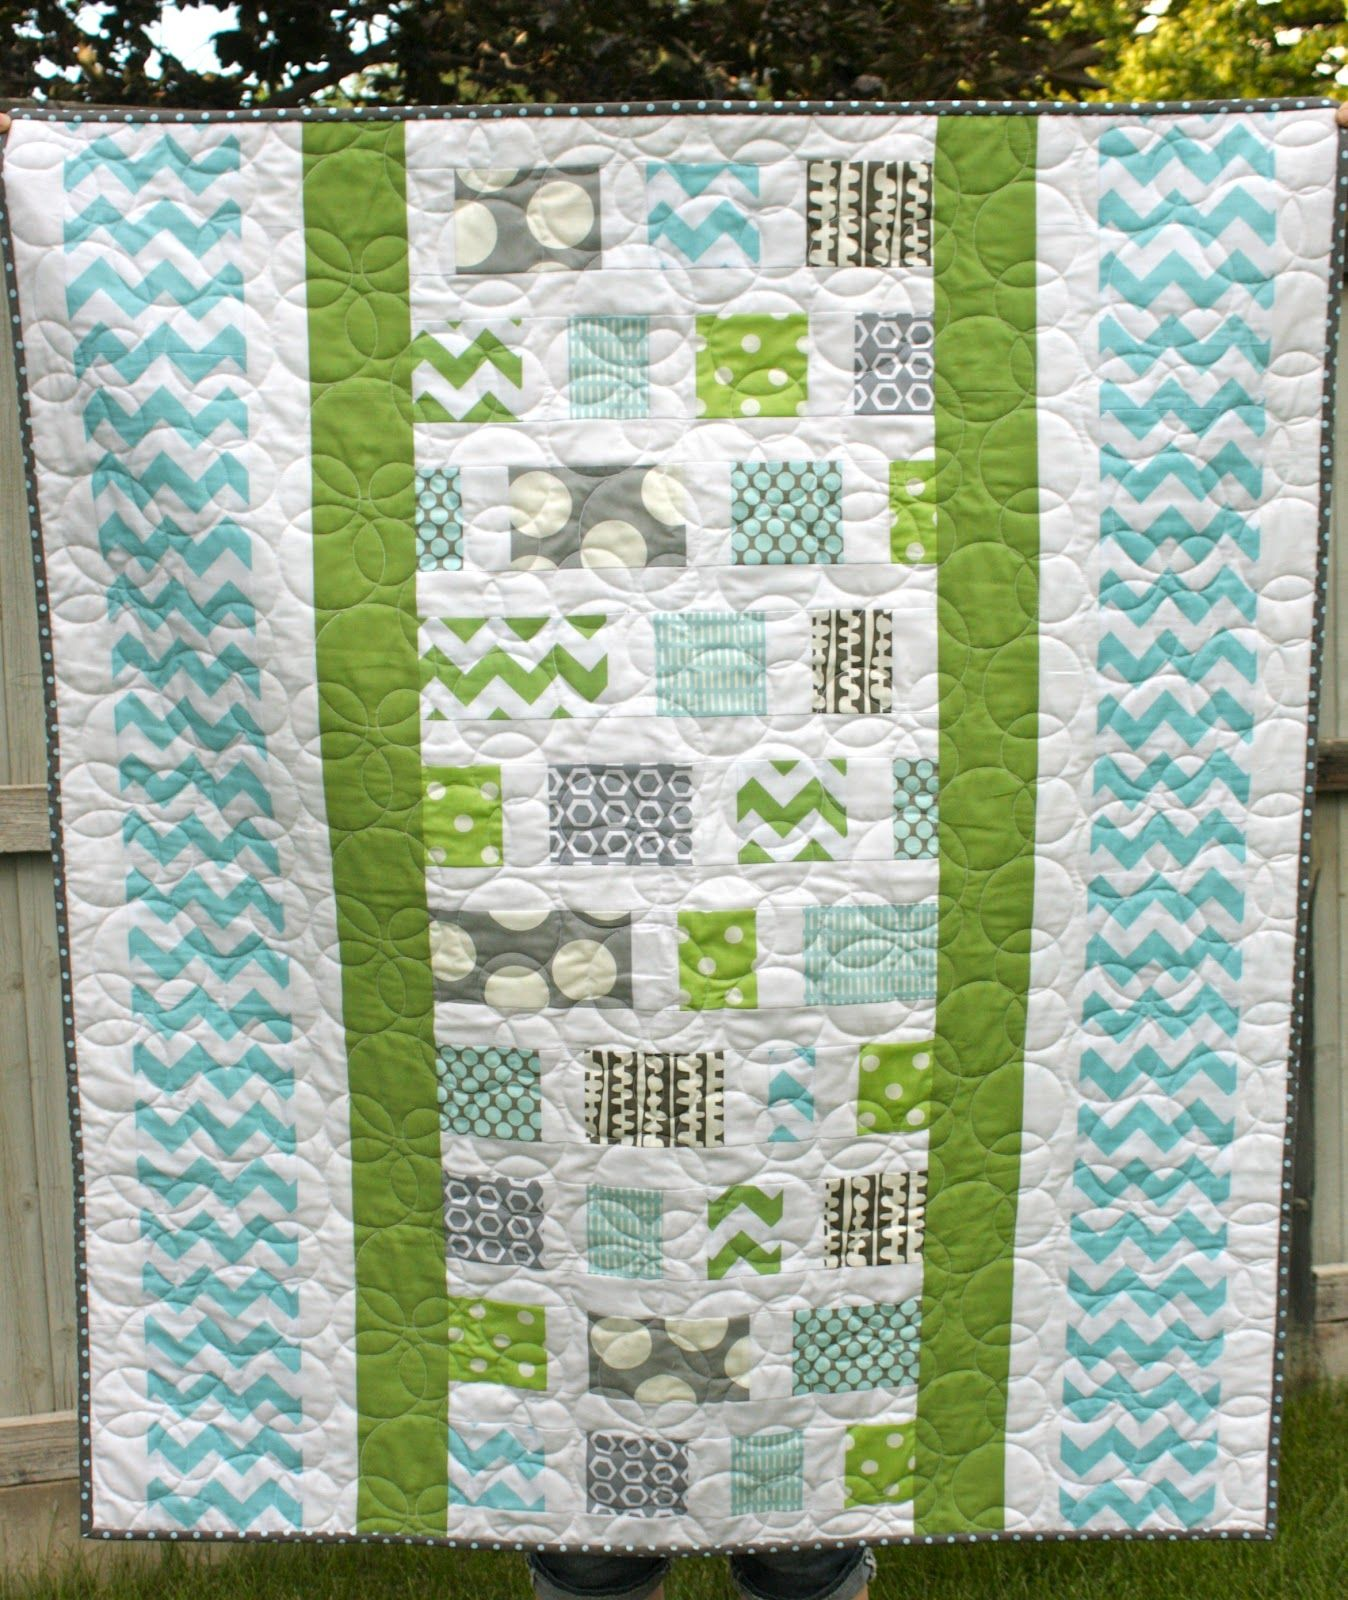 Mama's boy by Thimble blossoms. @Andrea R. I have this pattern ... : we r quilts - Adamdwight.com